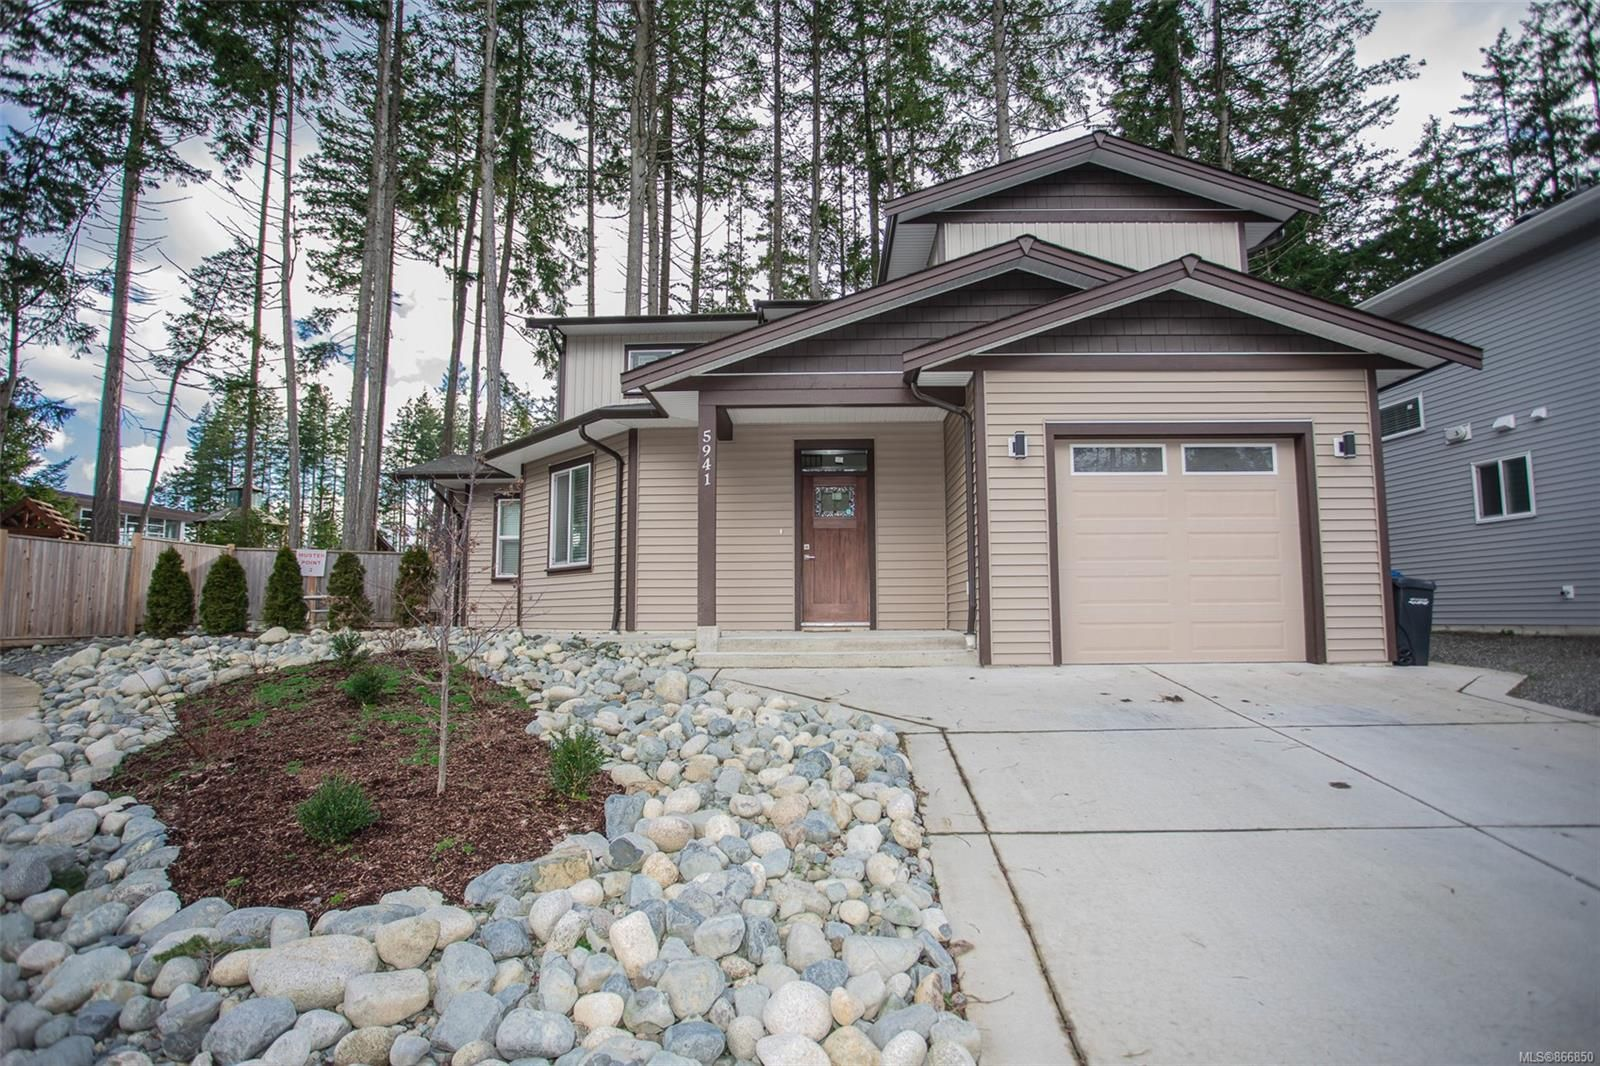 Main Photo: 5941 Stillwater Way in : Na North Nanaimo House for sale (Nanaimo)  : MLS®# 866850